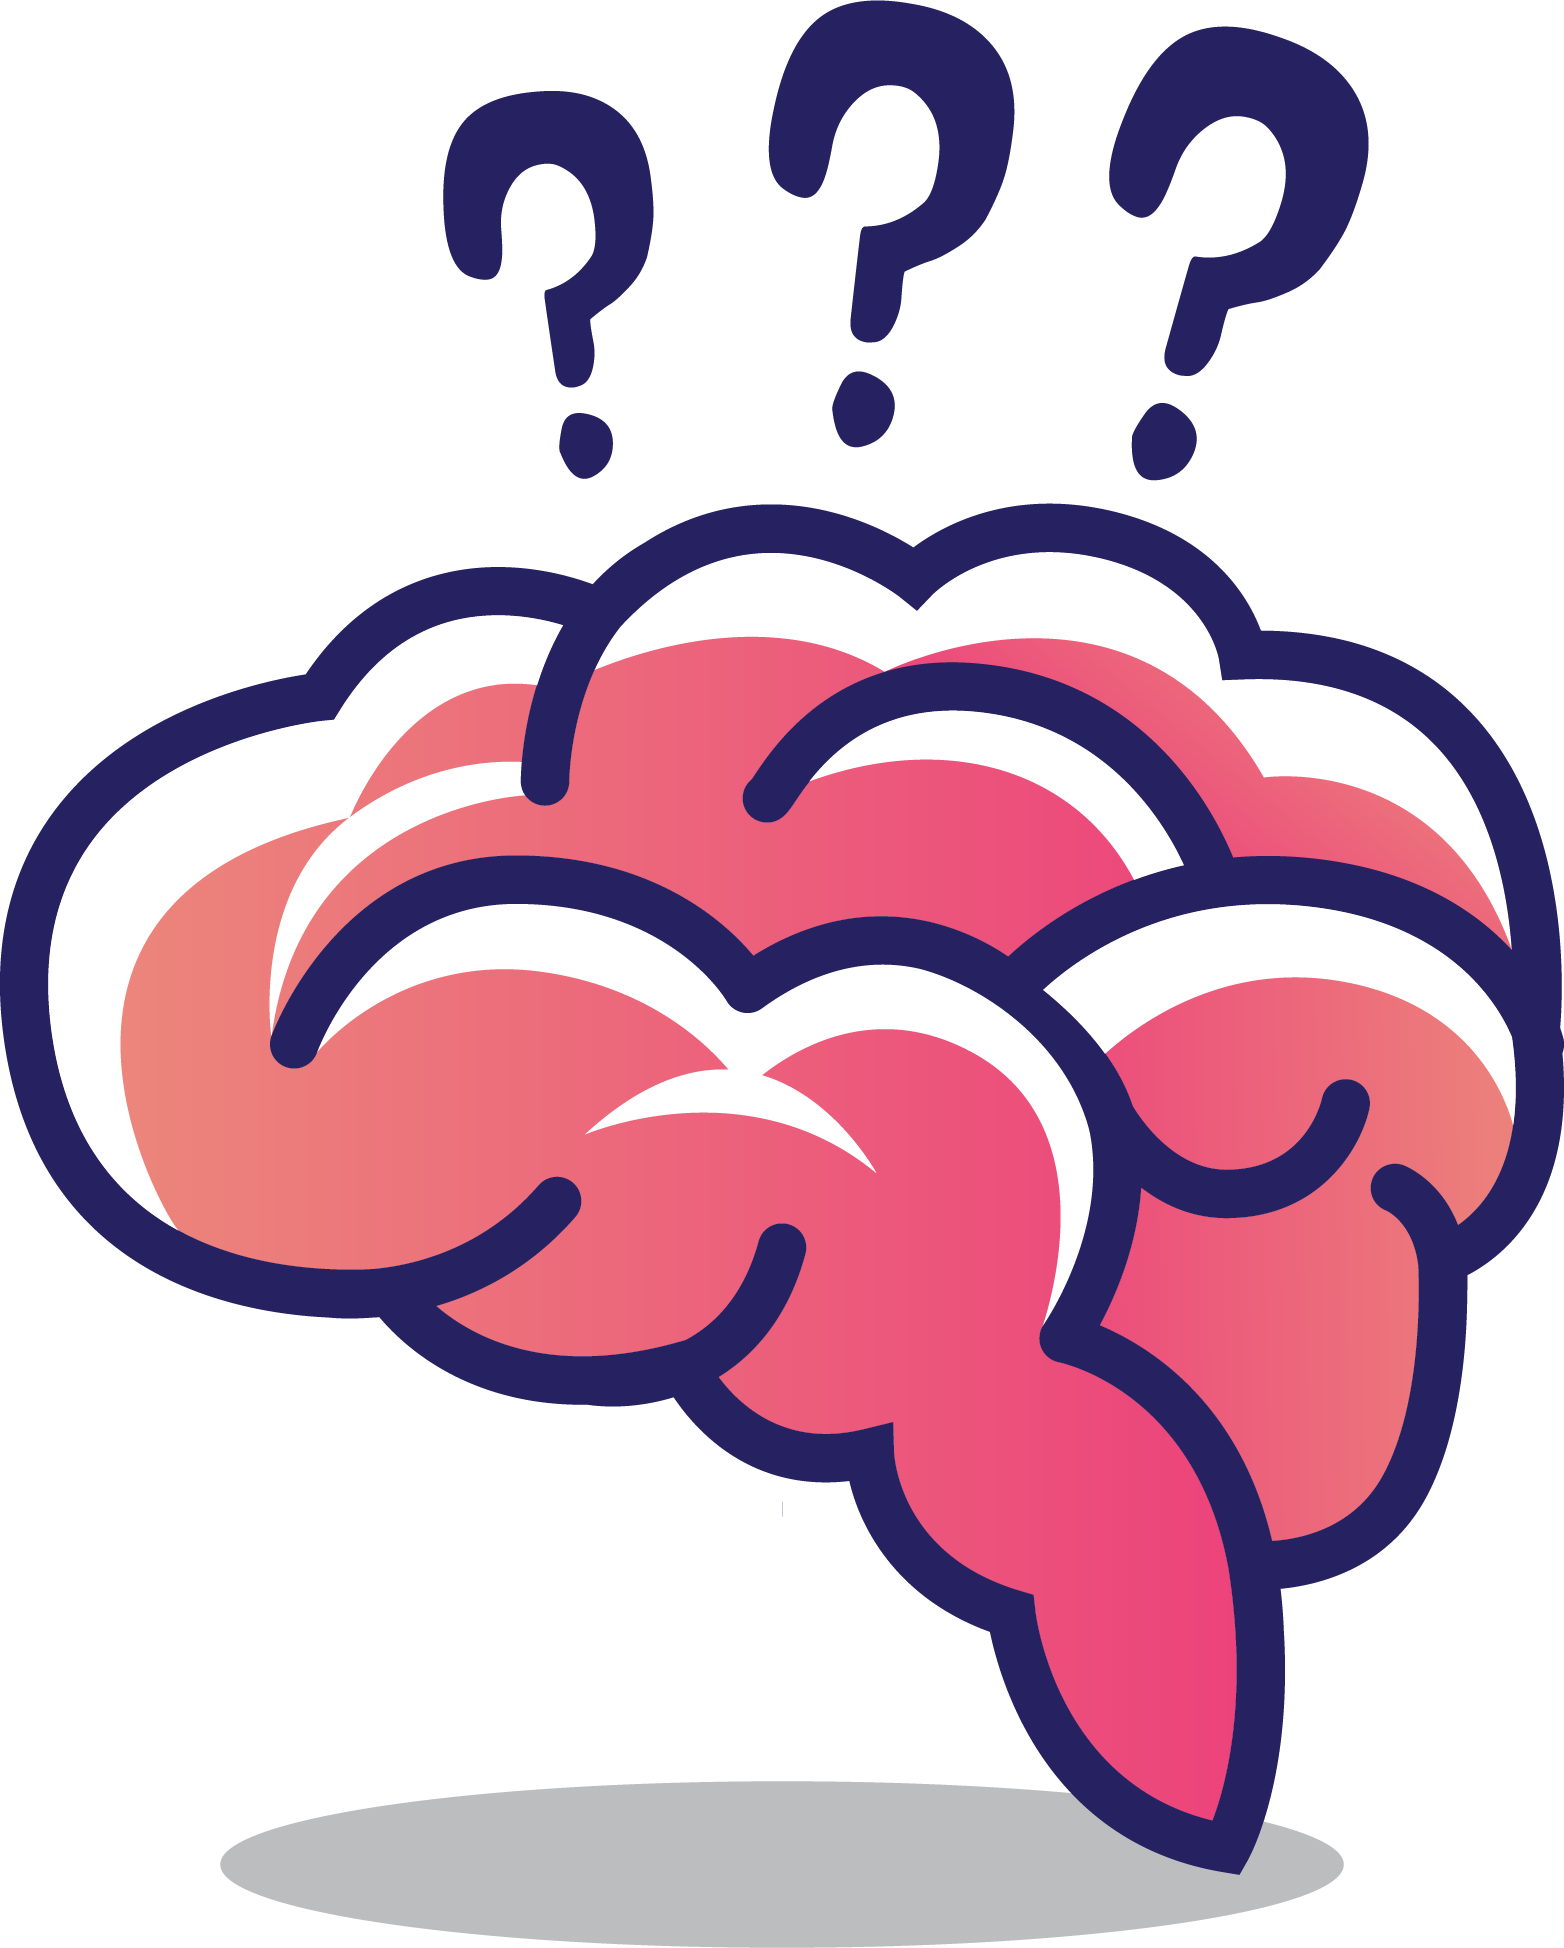 Thinking brain png. Human cerebrum clip art